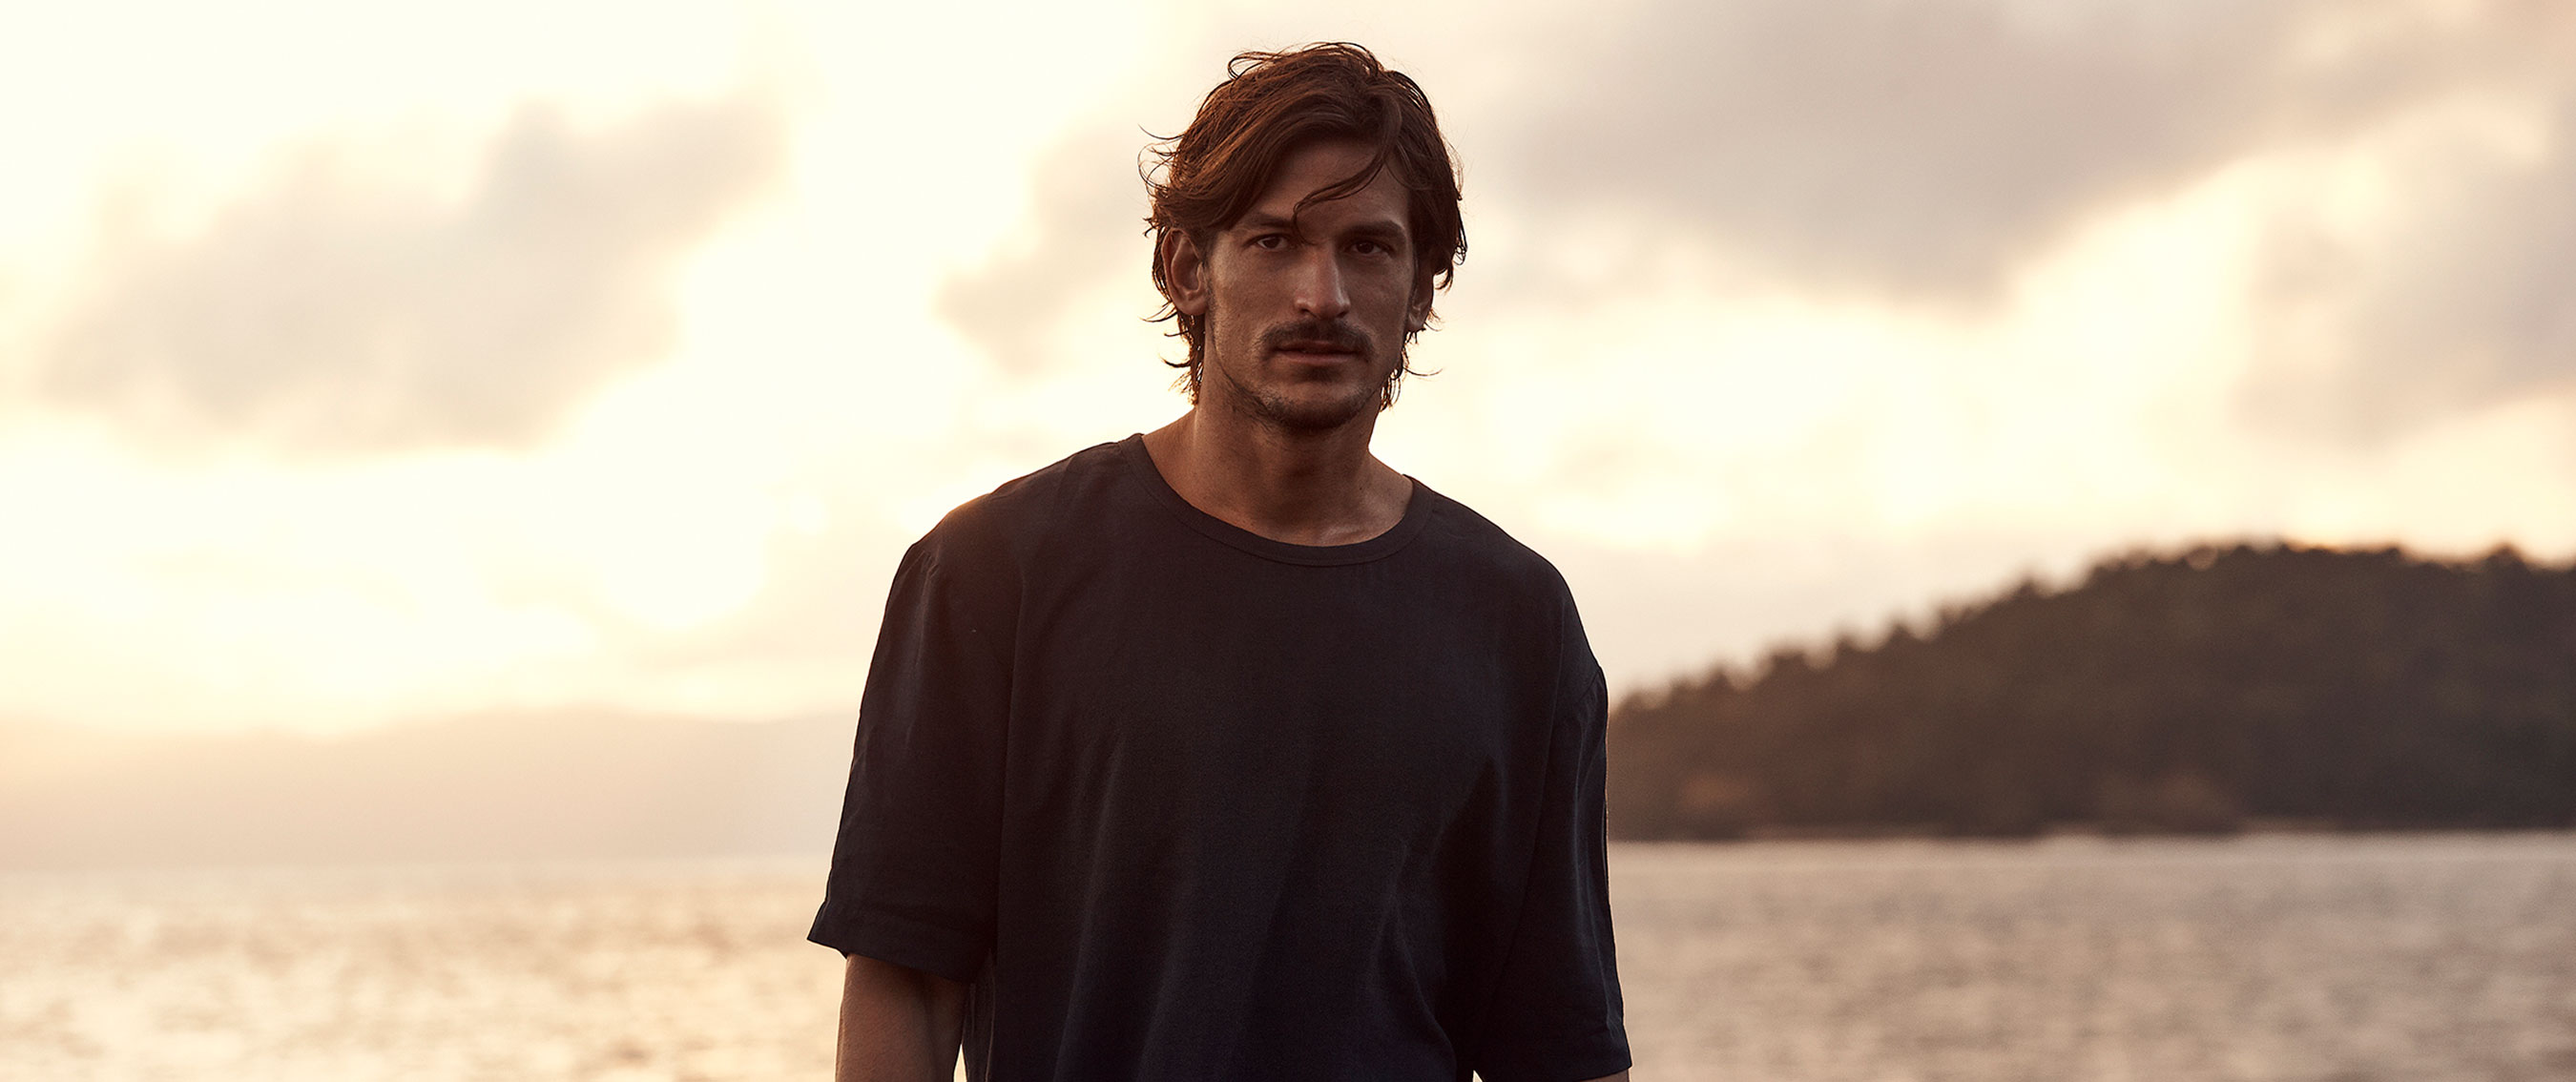 We are all responsible for creating change: Jarrod Scott